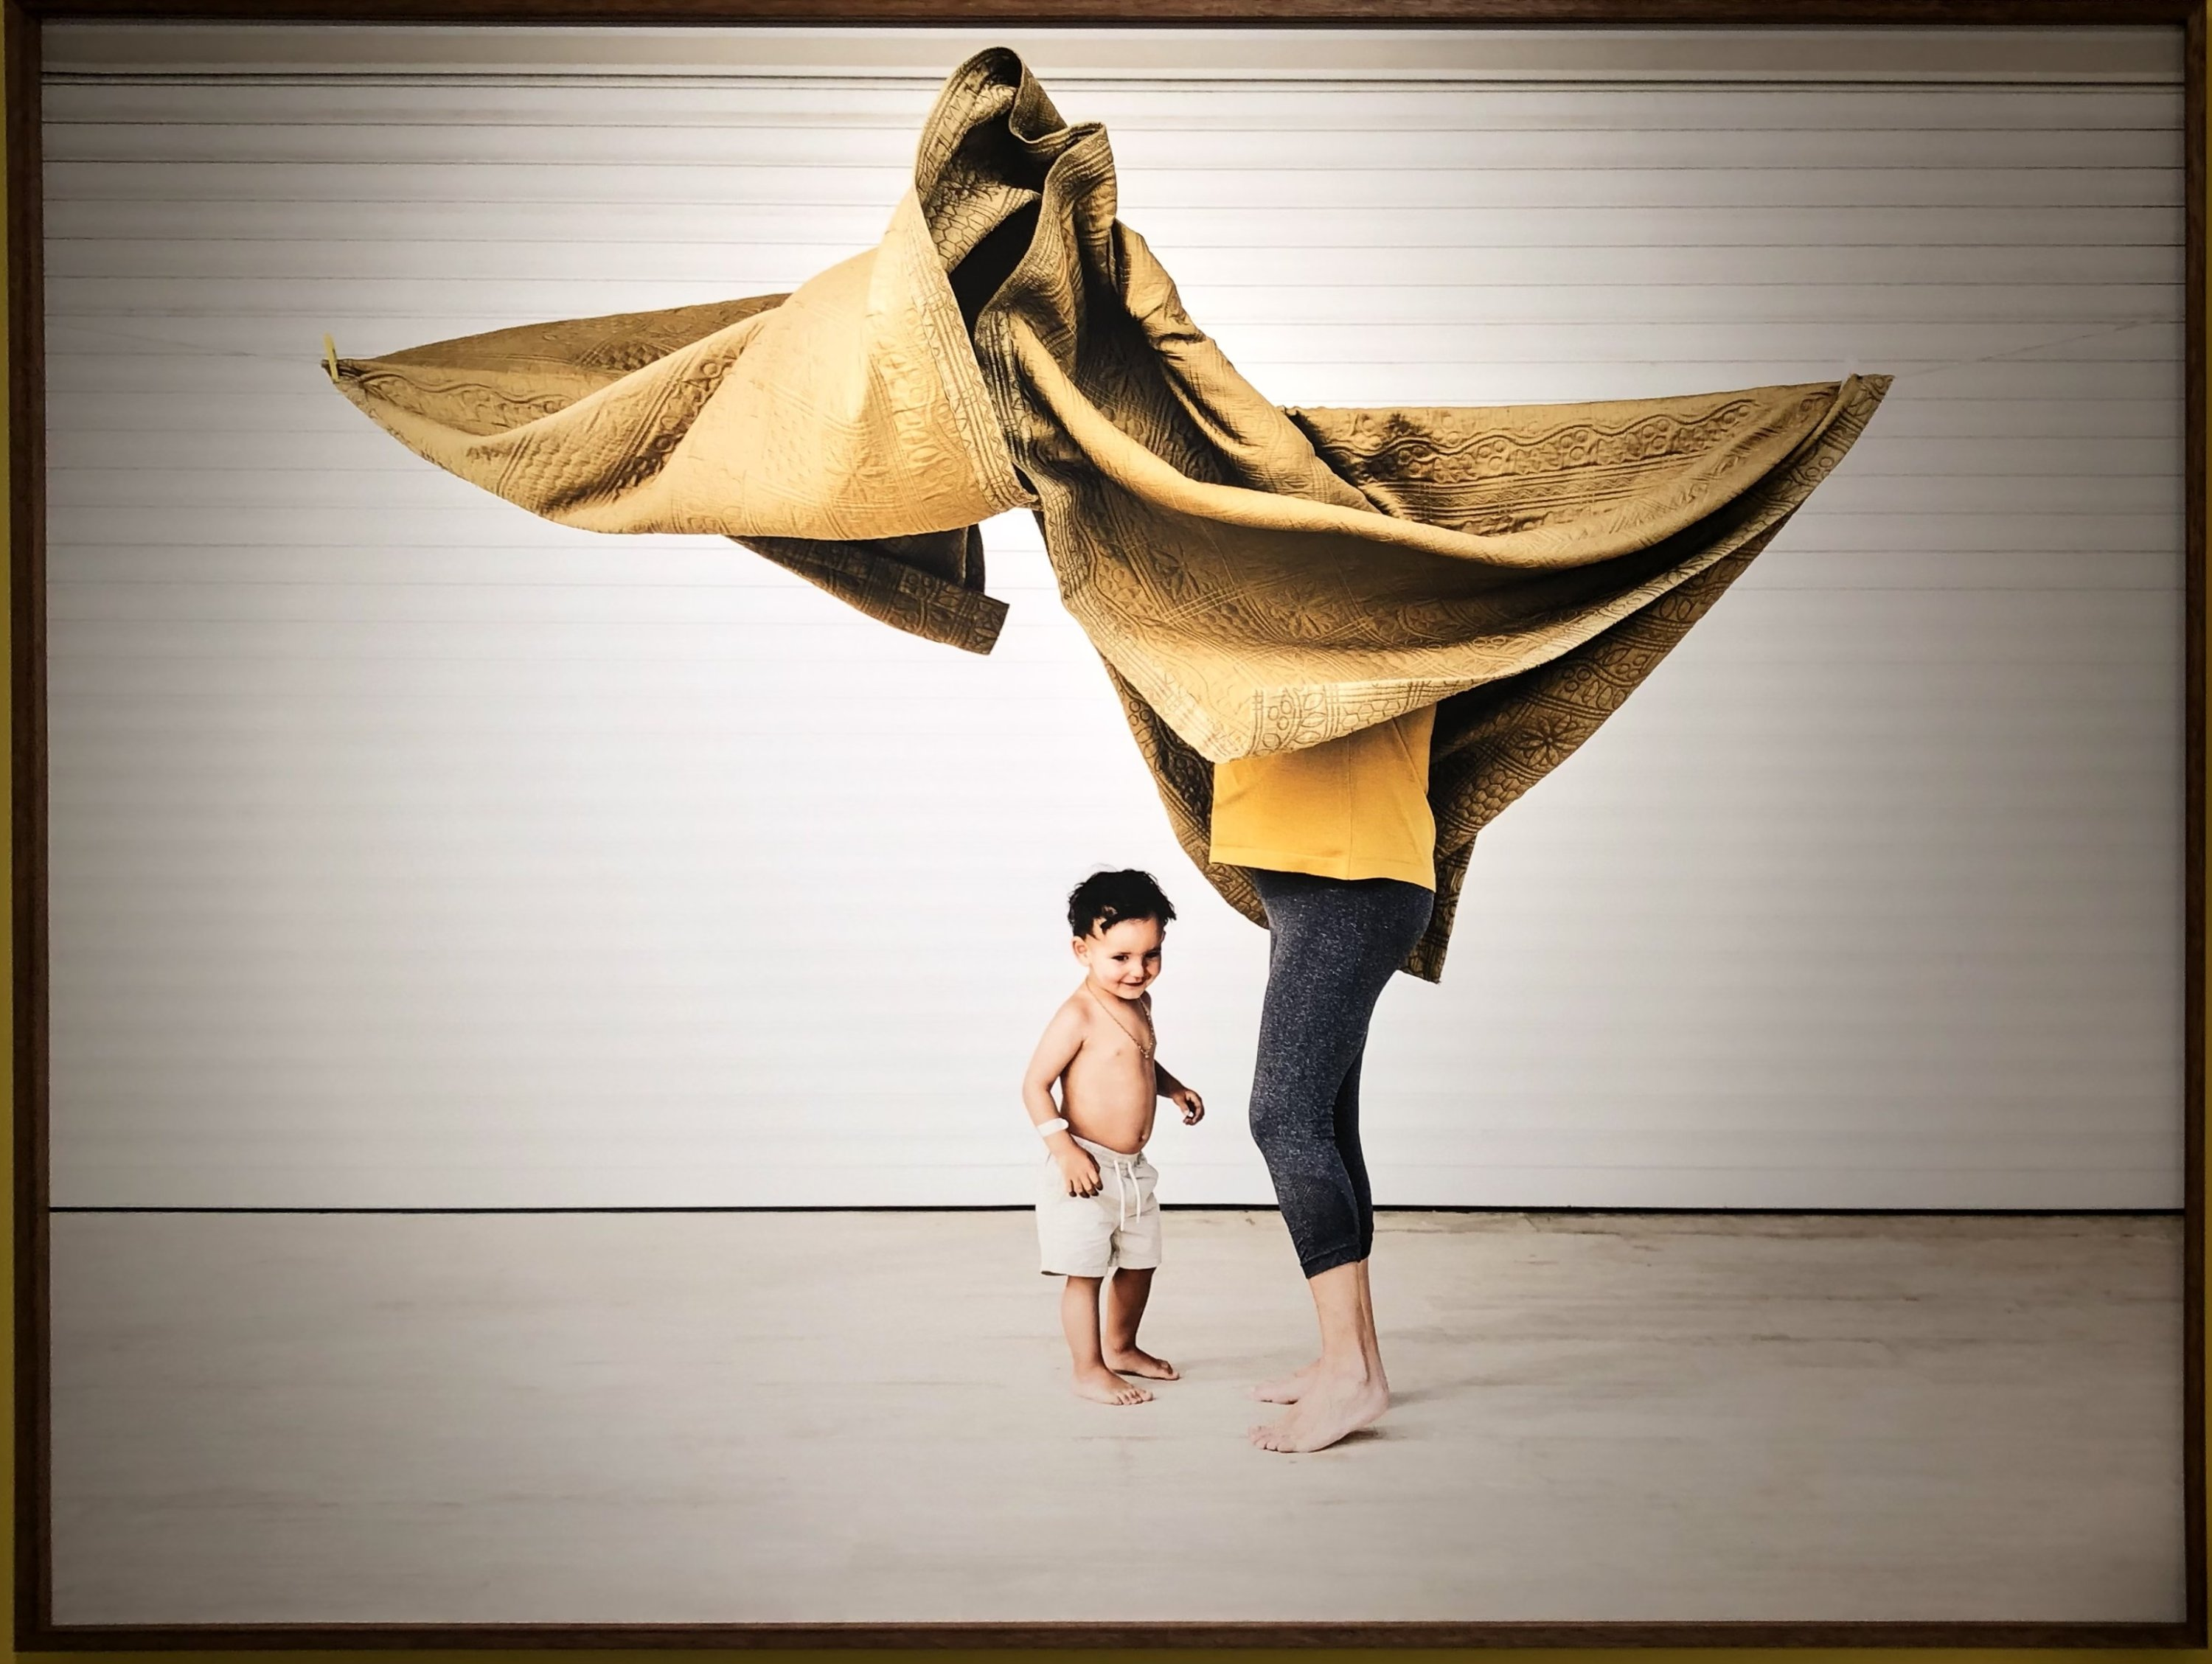 The photo depicts a motherly sort wearing a yellow shirt and playing with her child at the 'Double Portrait' by Cemre Yeşil. (Photo by Matt Hanson)